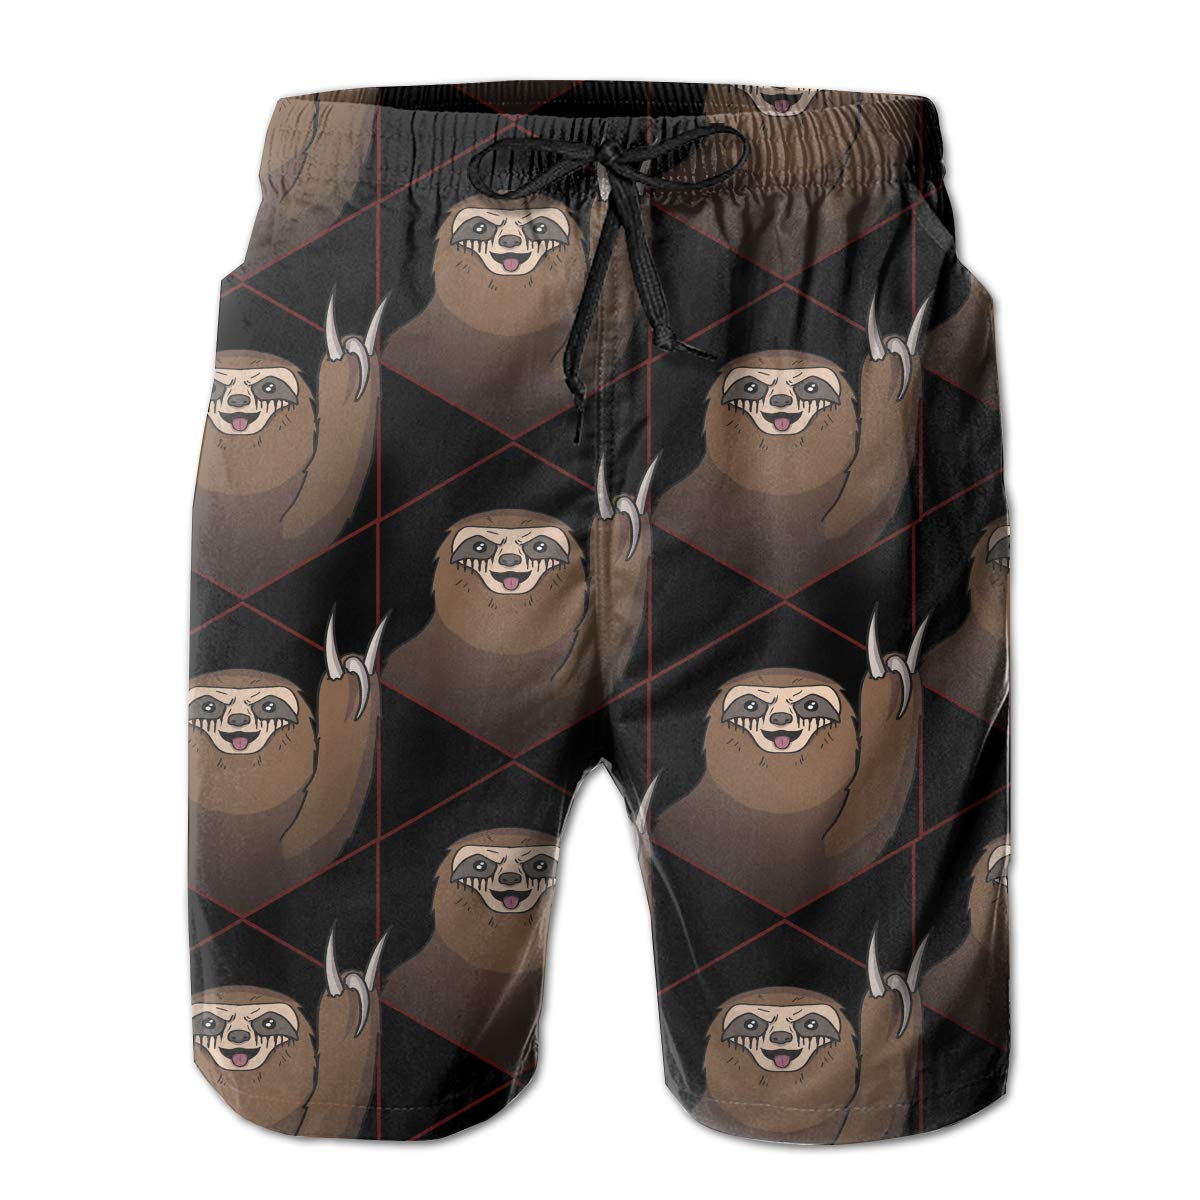 HHHDAM Metal Sloth Mens Swim Trunks Board Beachwear Casual Beach Shorts for Men with Mesh Lining